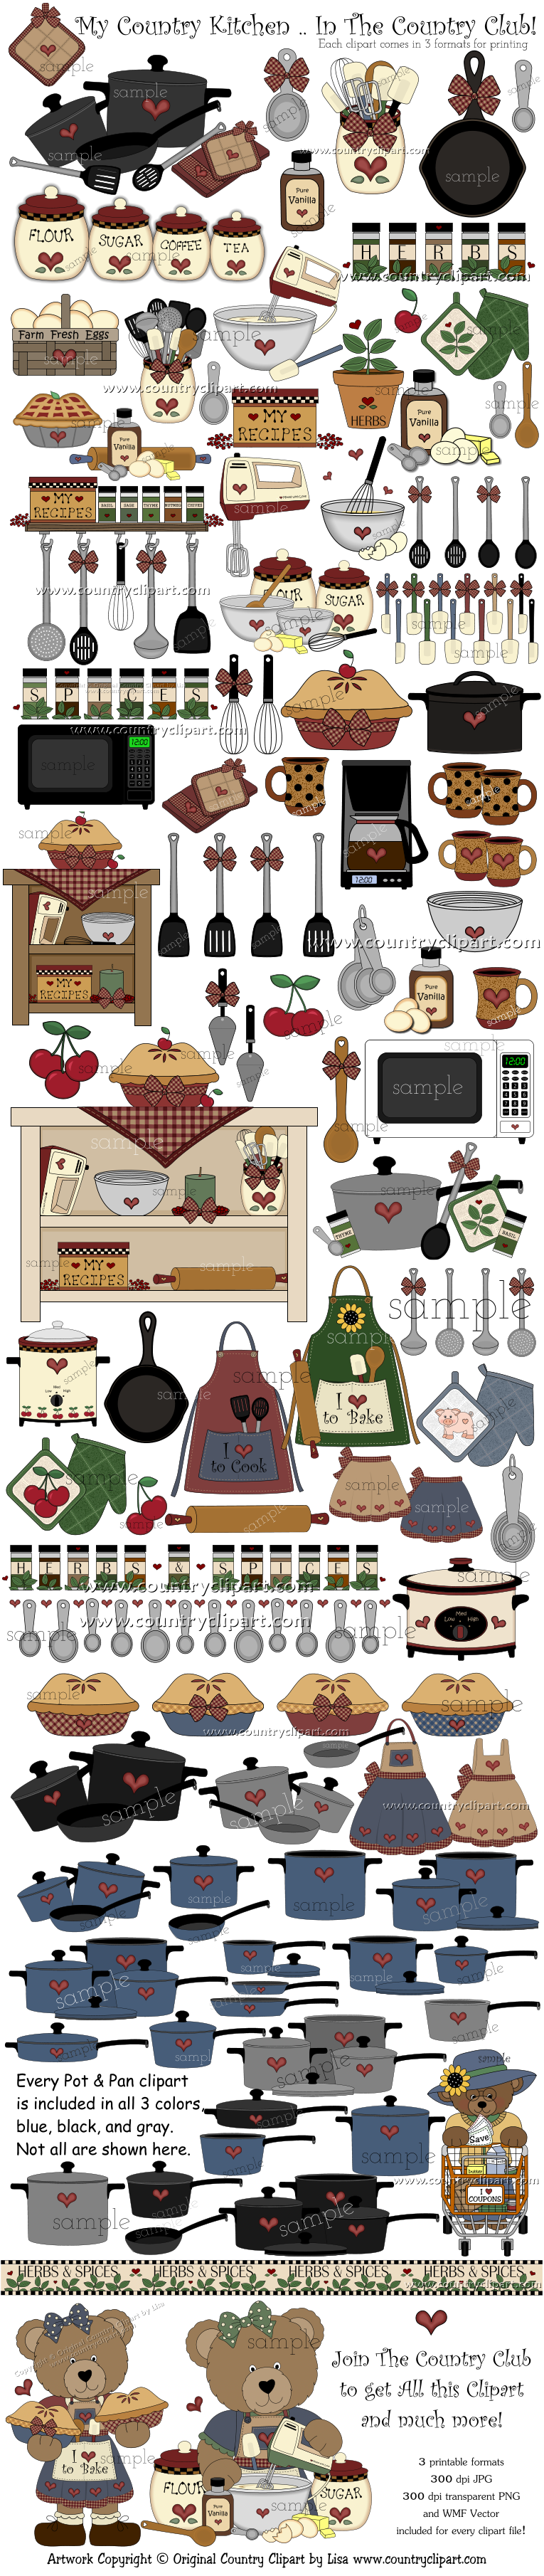 KitchenCookBakeClipArt